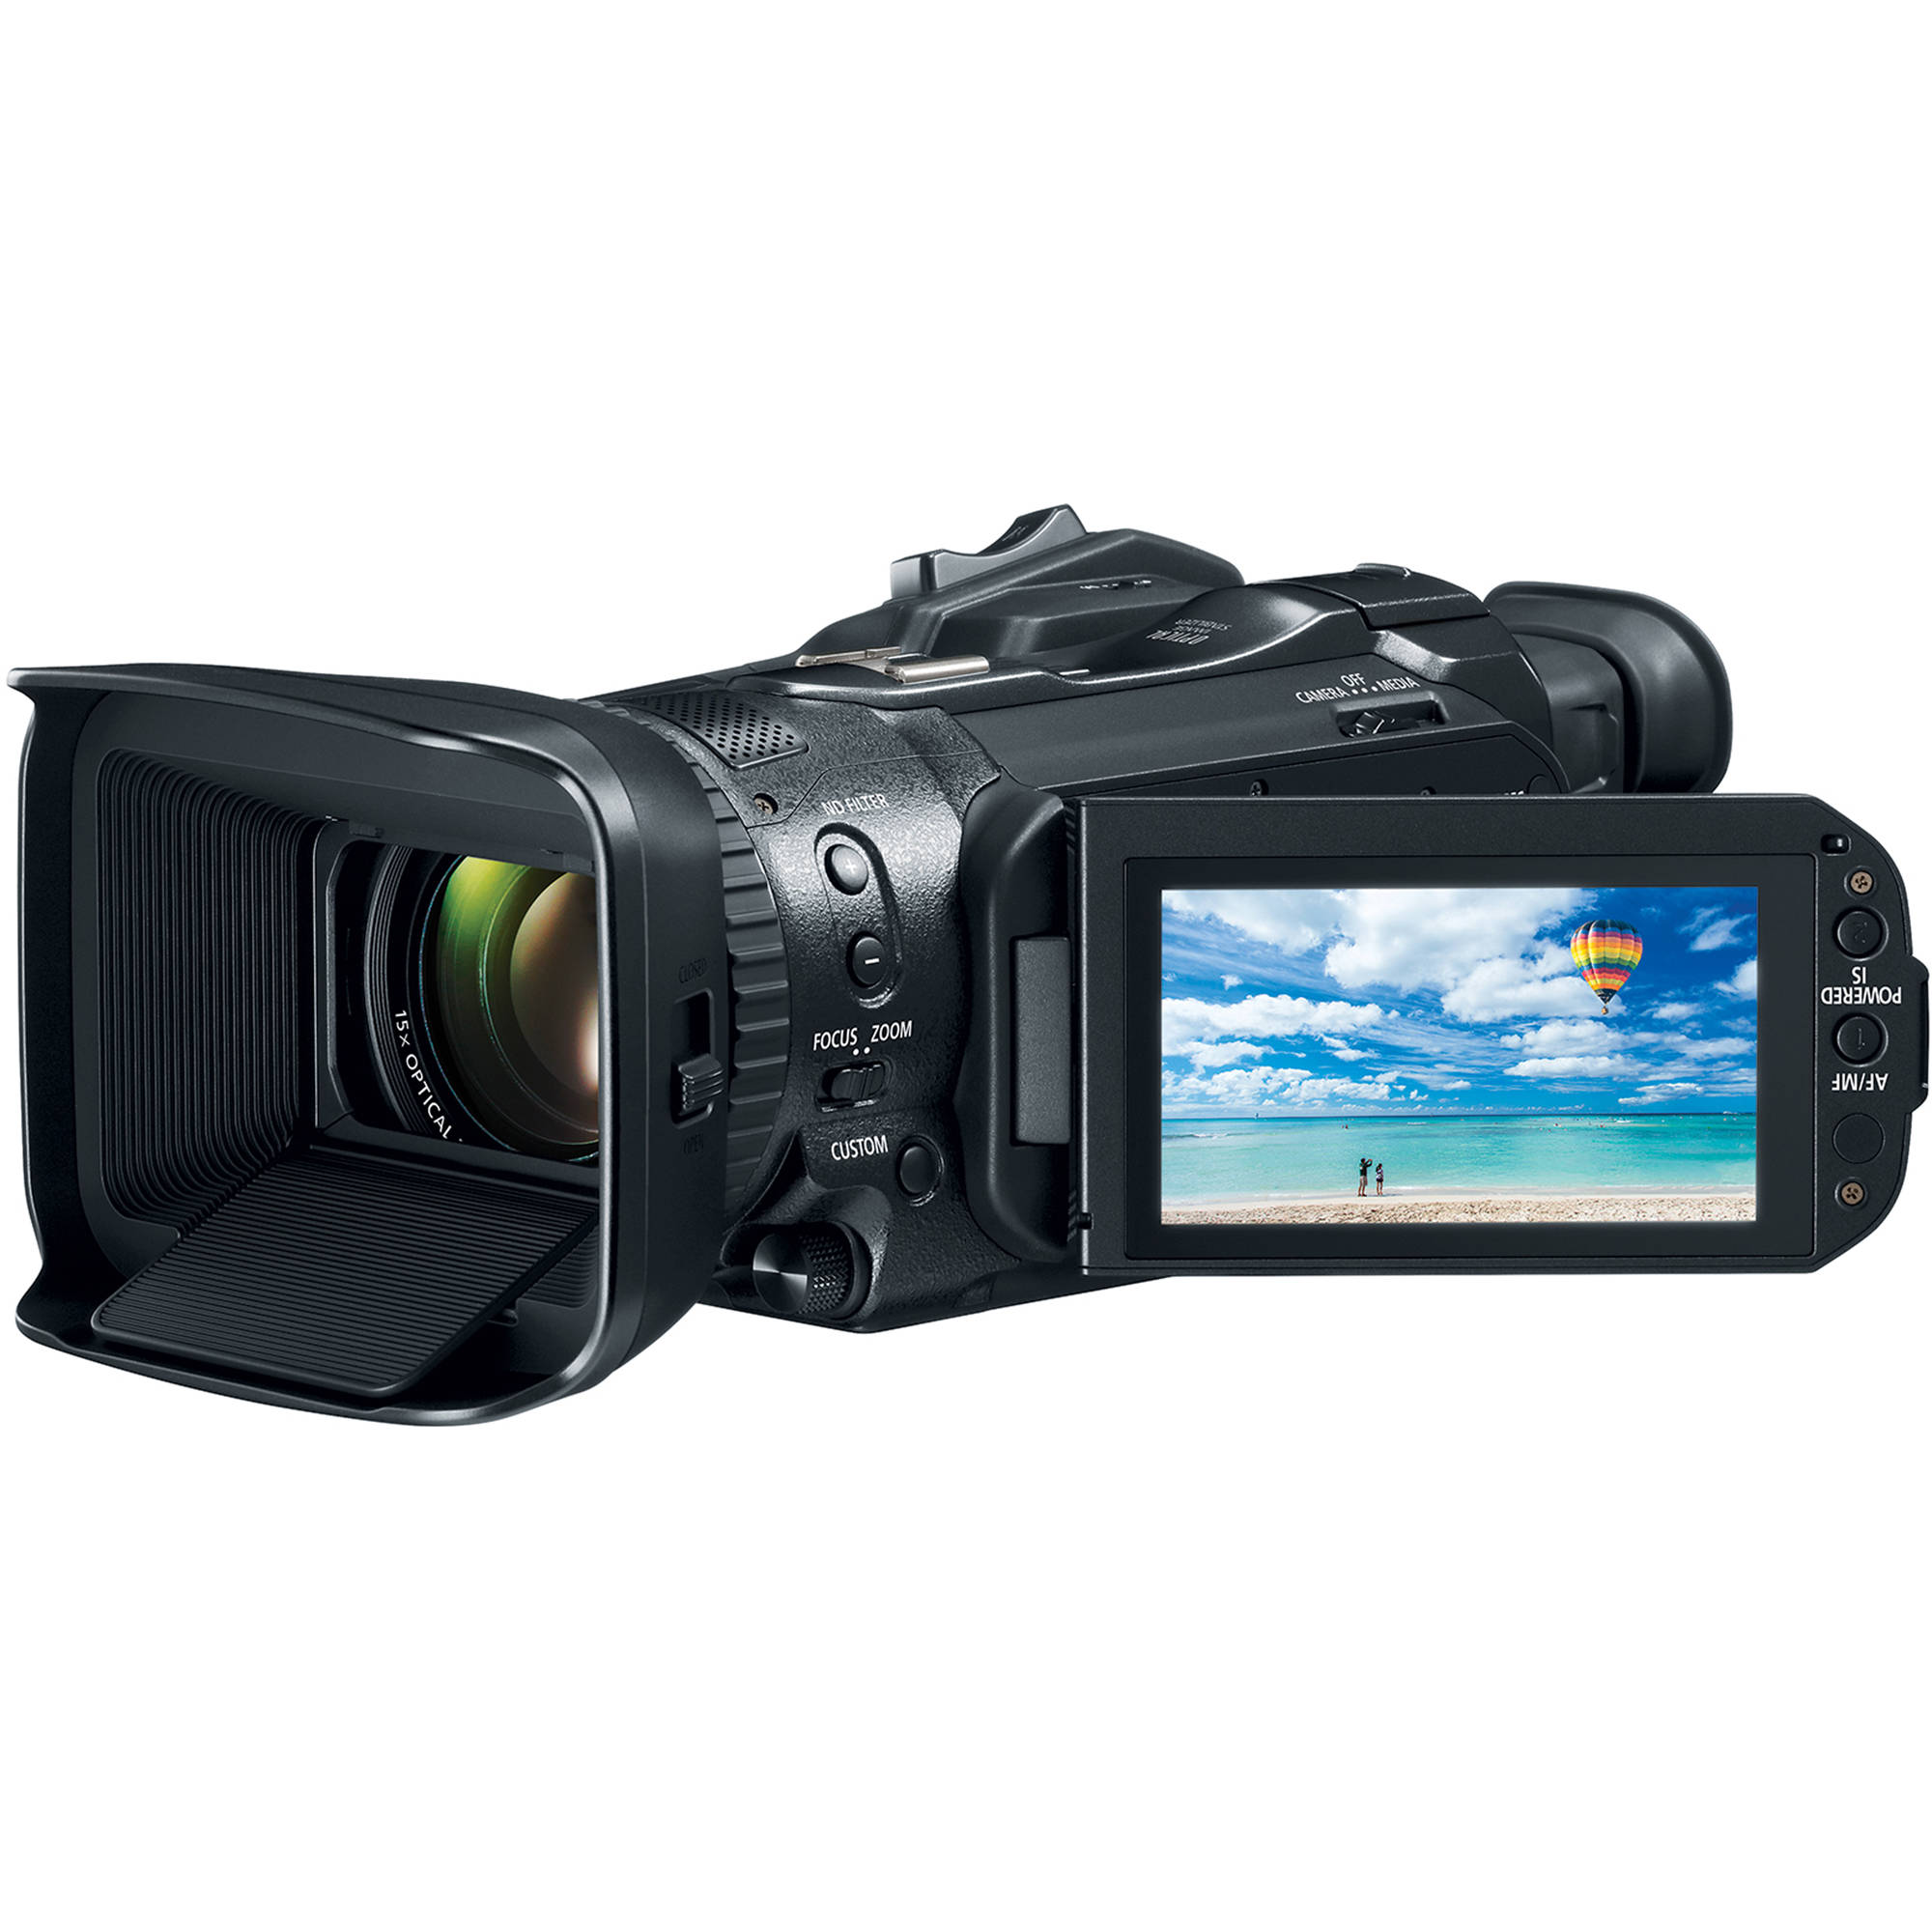 New 1-Inch Sensor Camcorders—Are They the Latest Craze